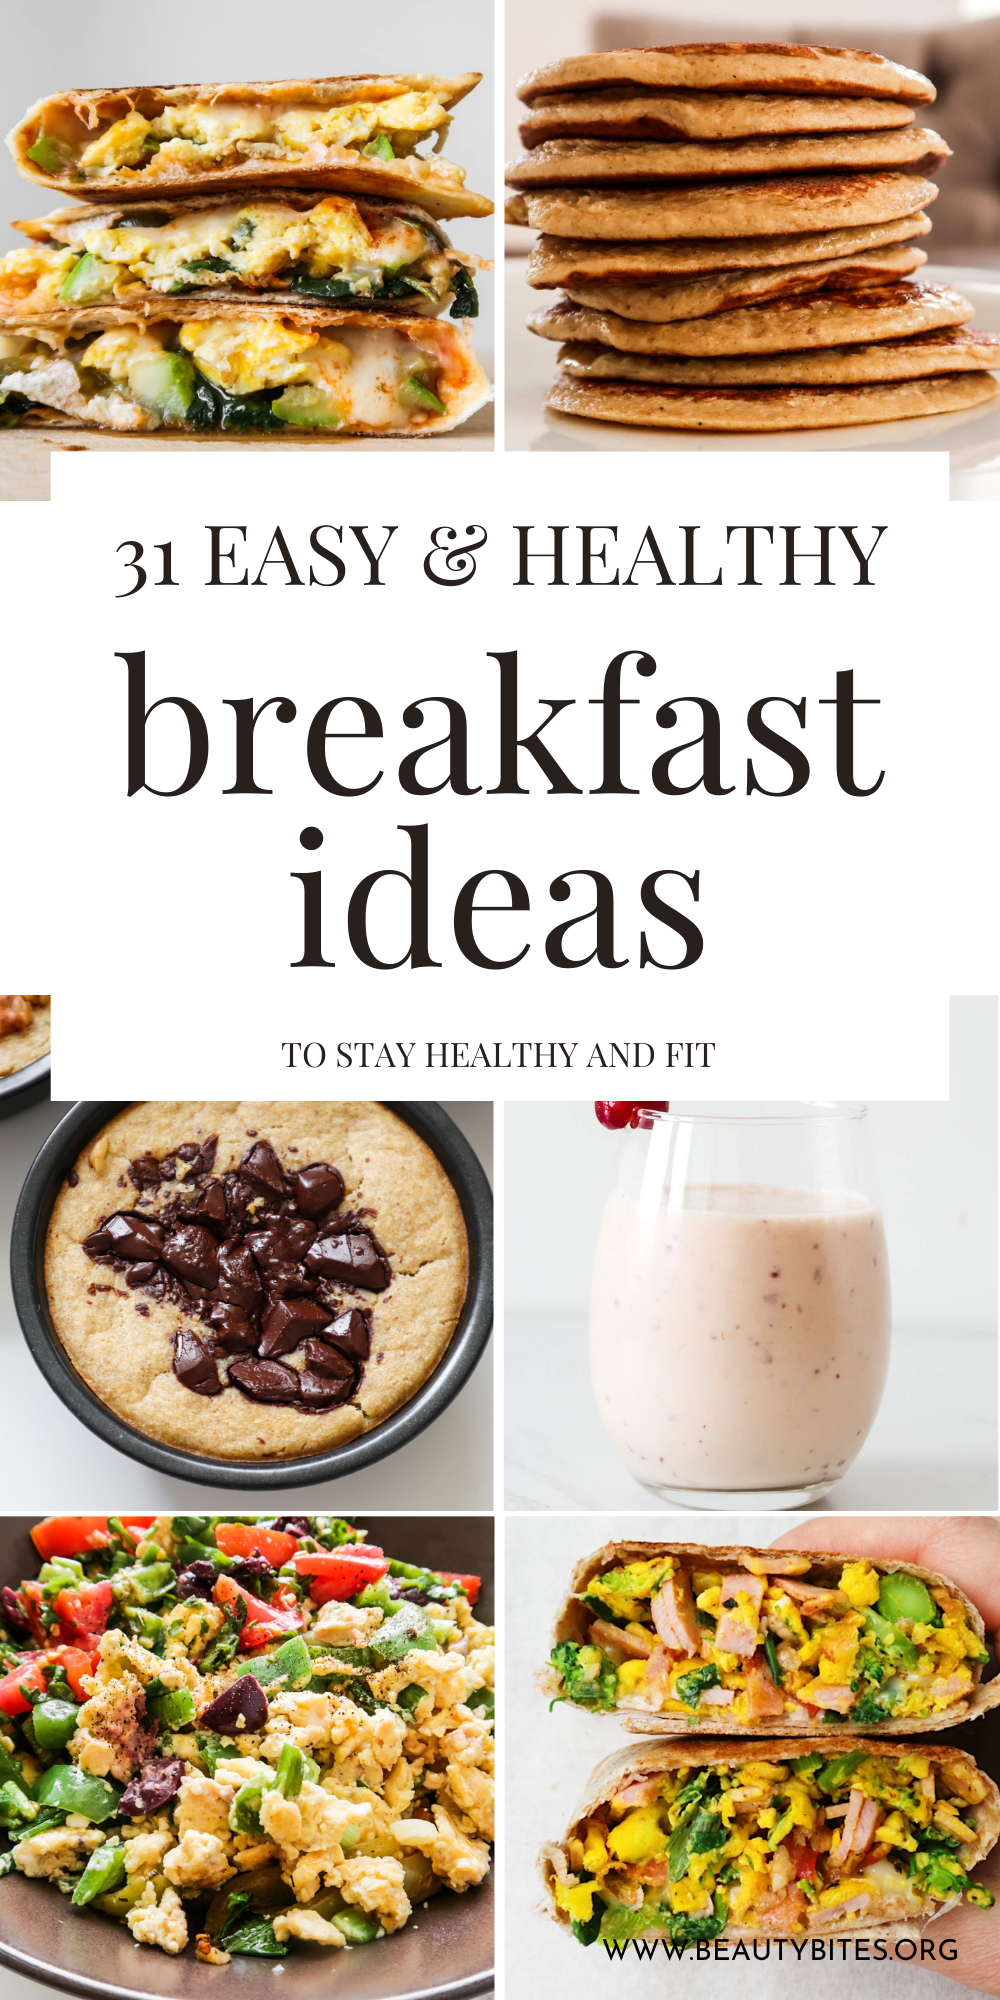 30+ easy healthy breakfast recipes that you'll love! This is a collection savory and sweet breakfast ideas that include healthy pancakes, breakfast muffins, breakfast quesadillas, breakfast burritos, overnight oats, oatmeal recipes and more! Easy and delicious recipes that are easy to meal prep and kid-friendly for the most part!